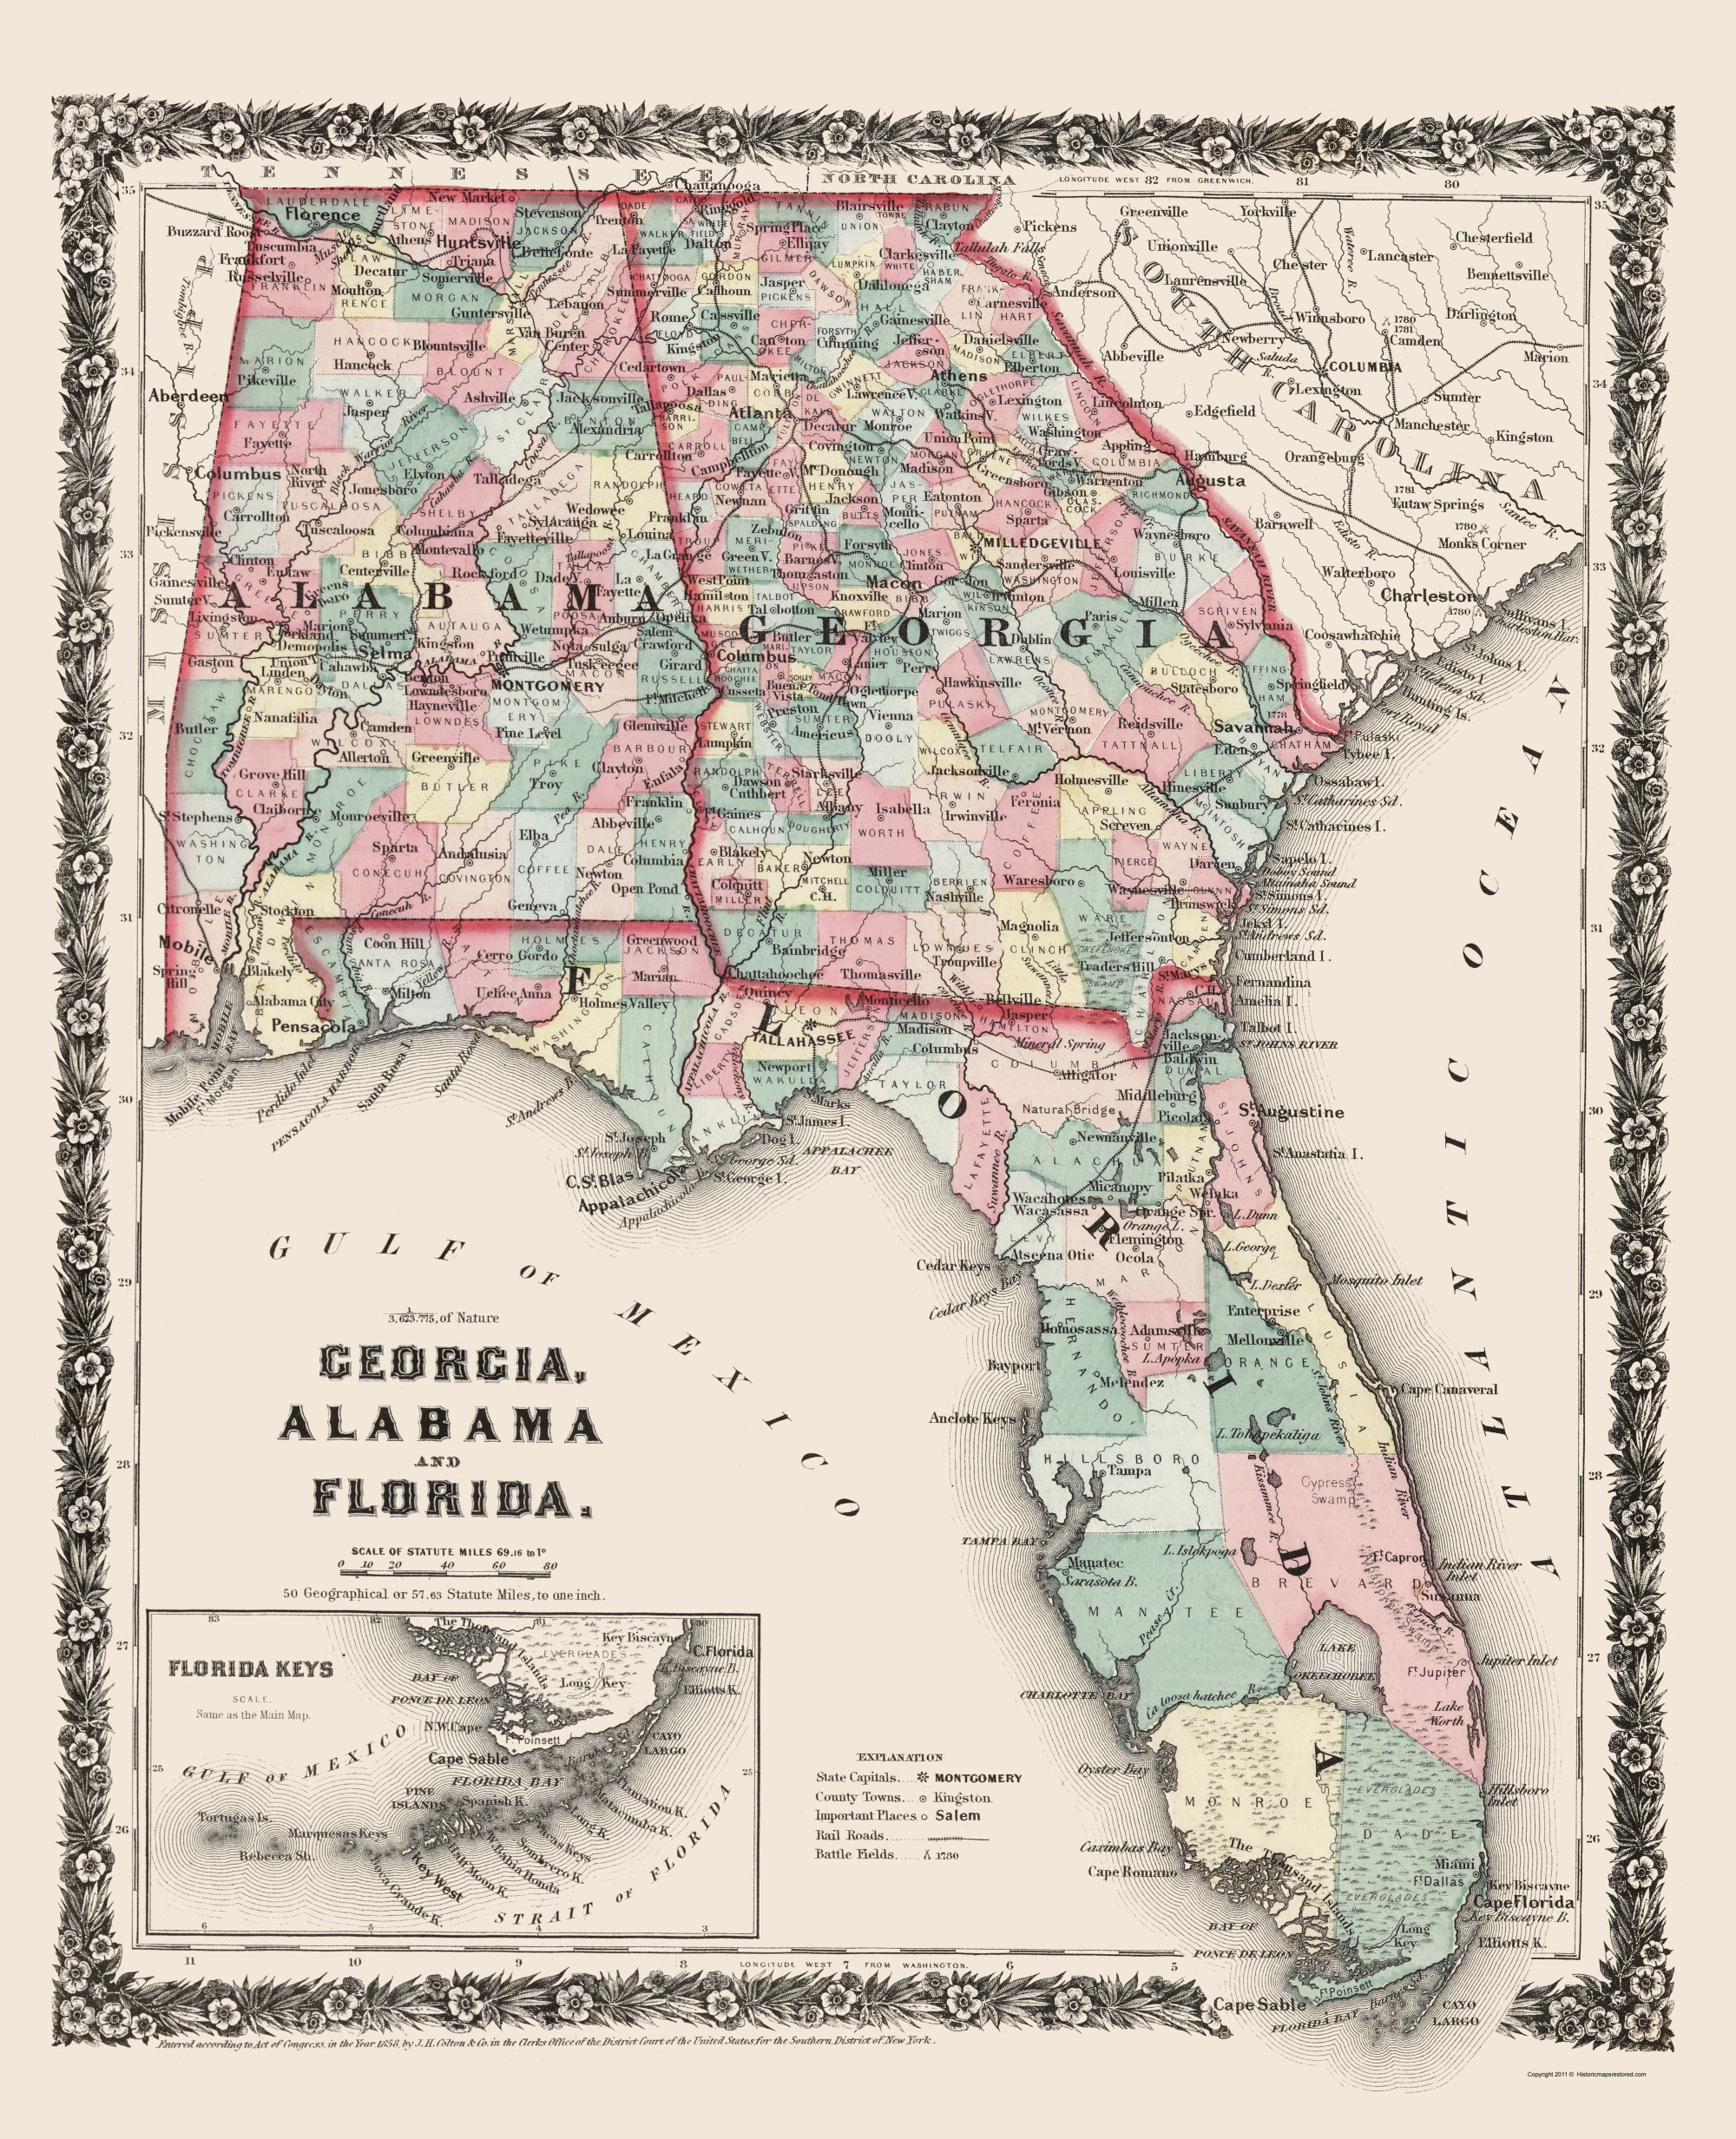 Old State Map - Georgia, Alabama, Florida - Colton 1858